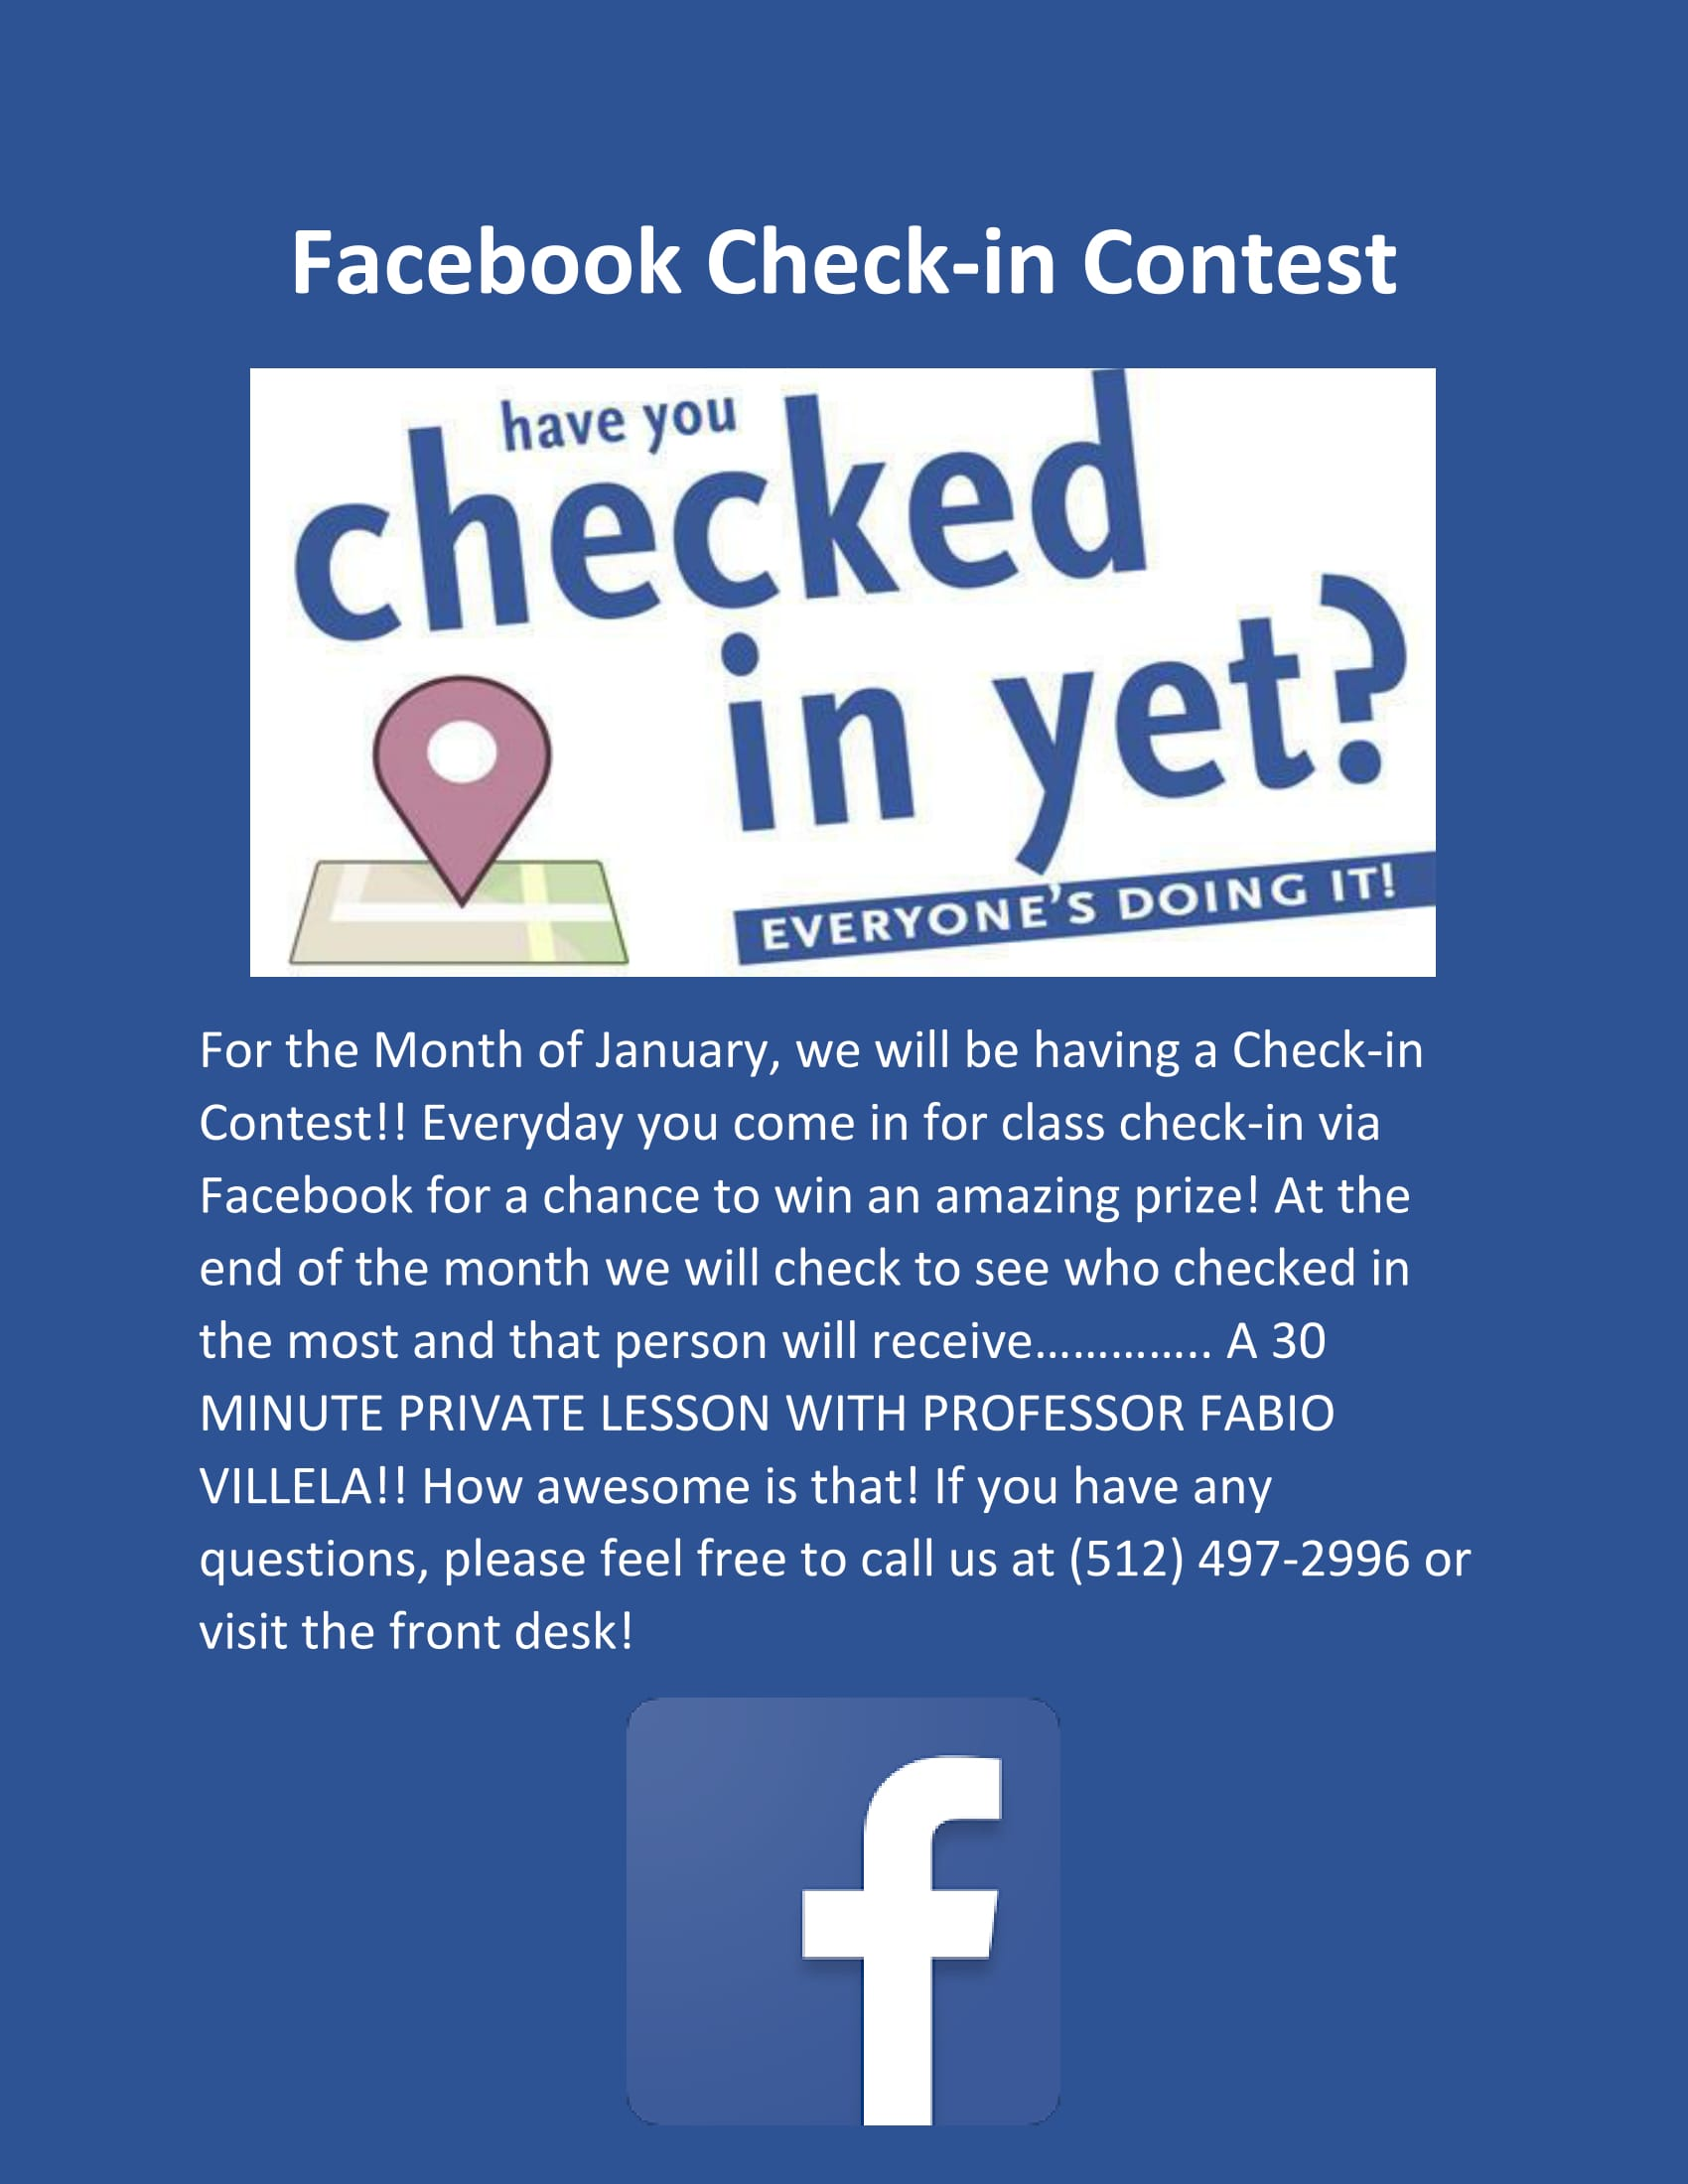 Facebook Check-In Contest